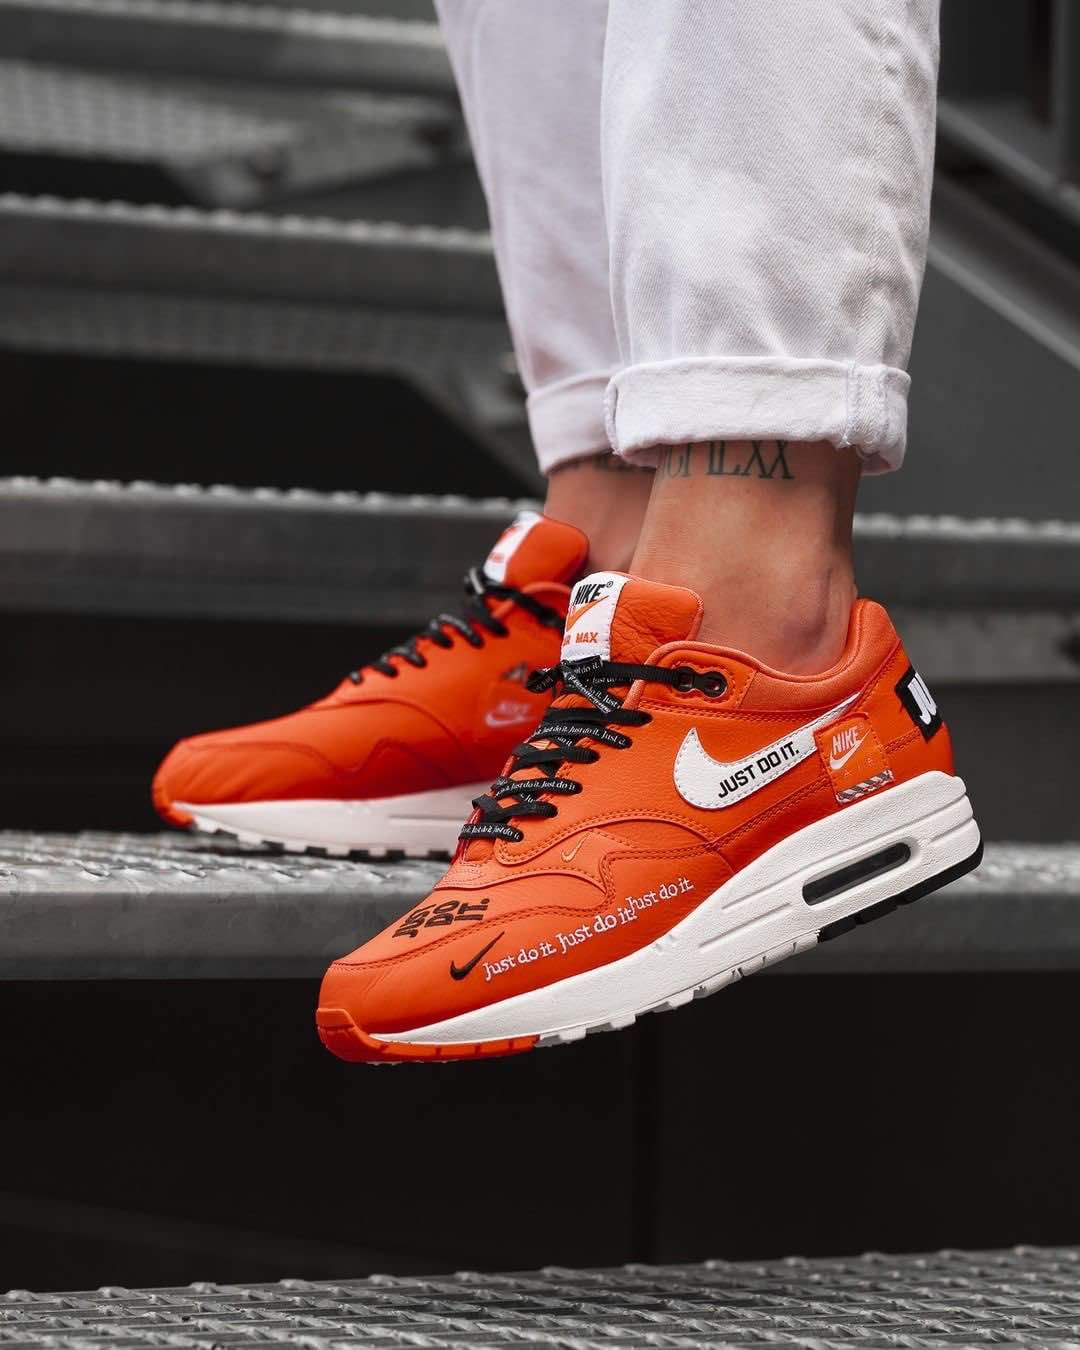 brand new 5c57e 4691b Nike Air Max 1 Lux « Just Do It » Orange   Black   White Credit   Overkill